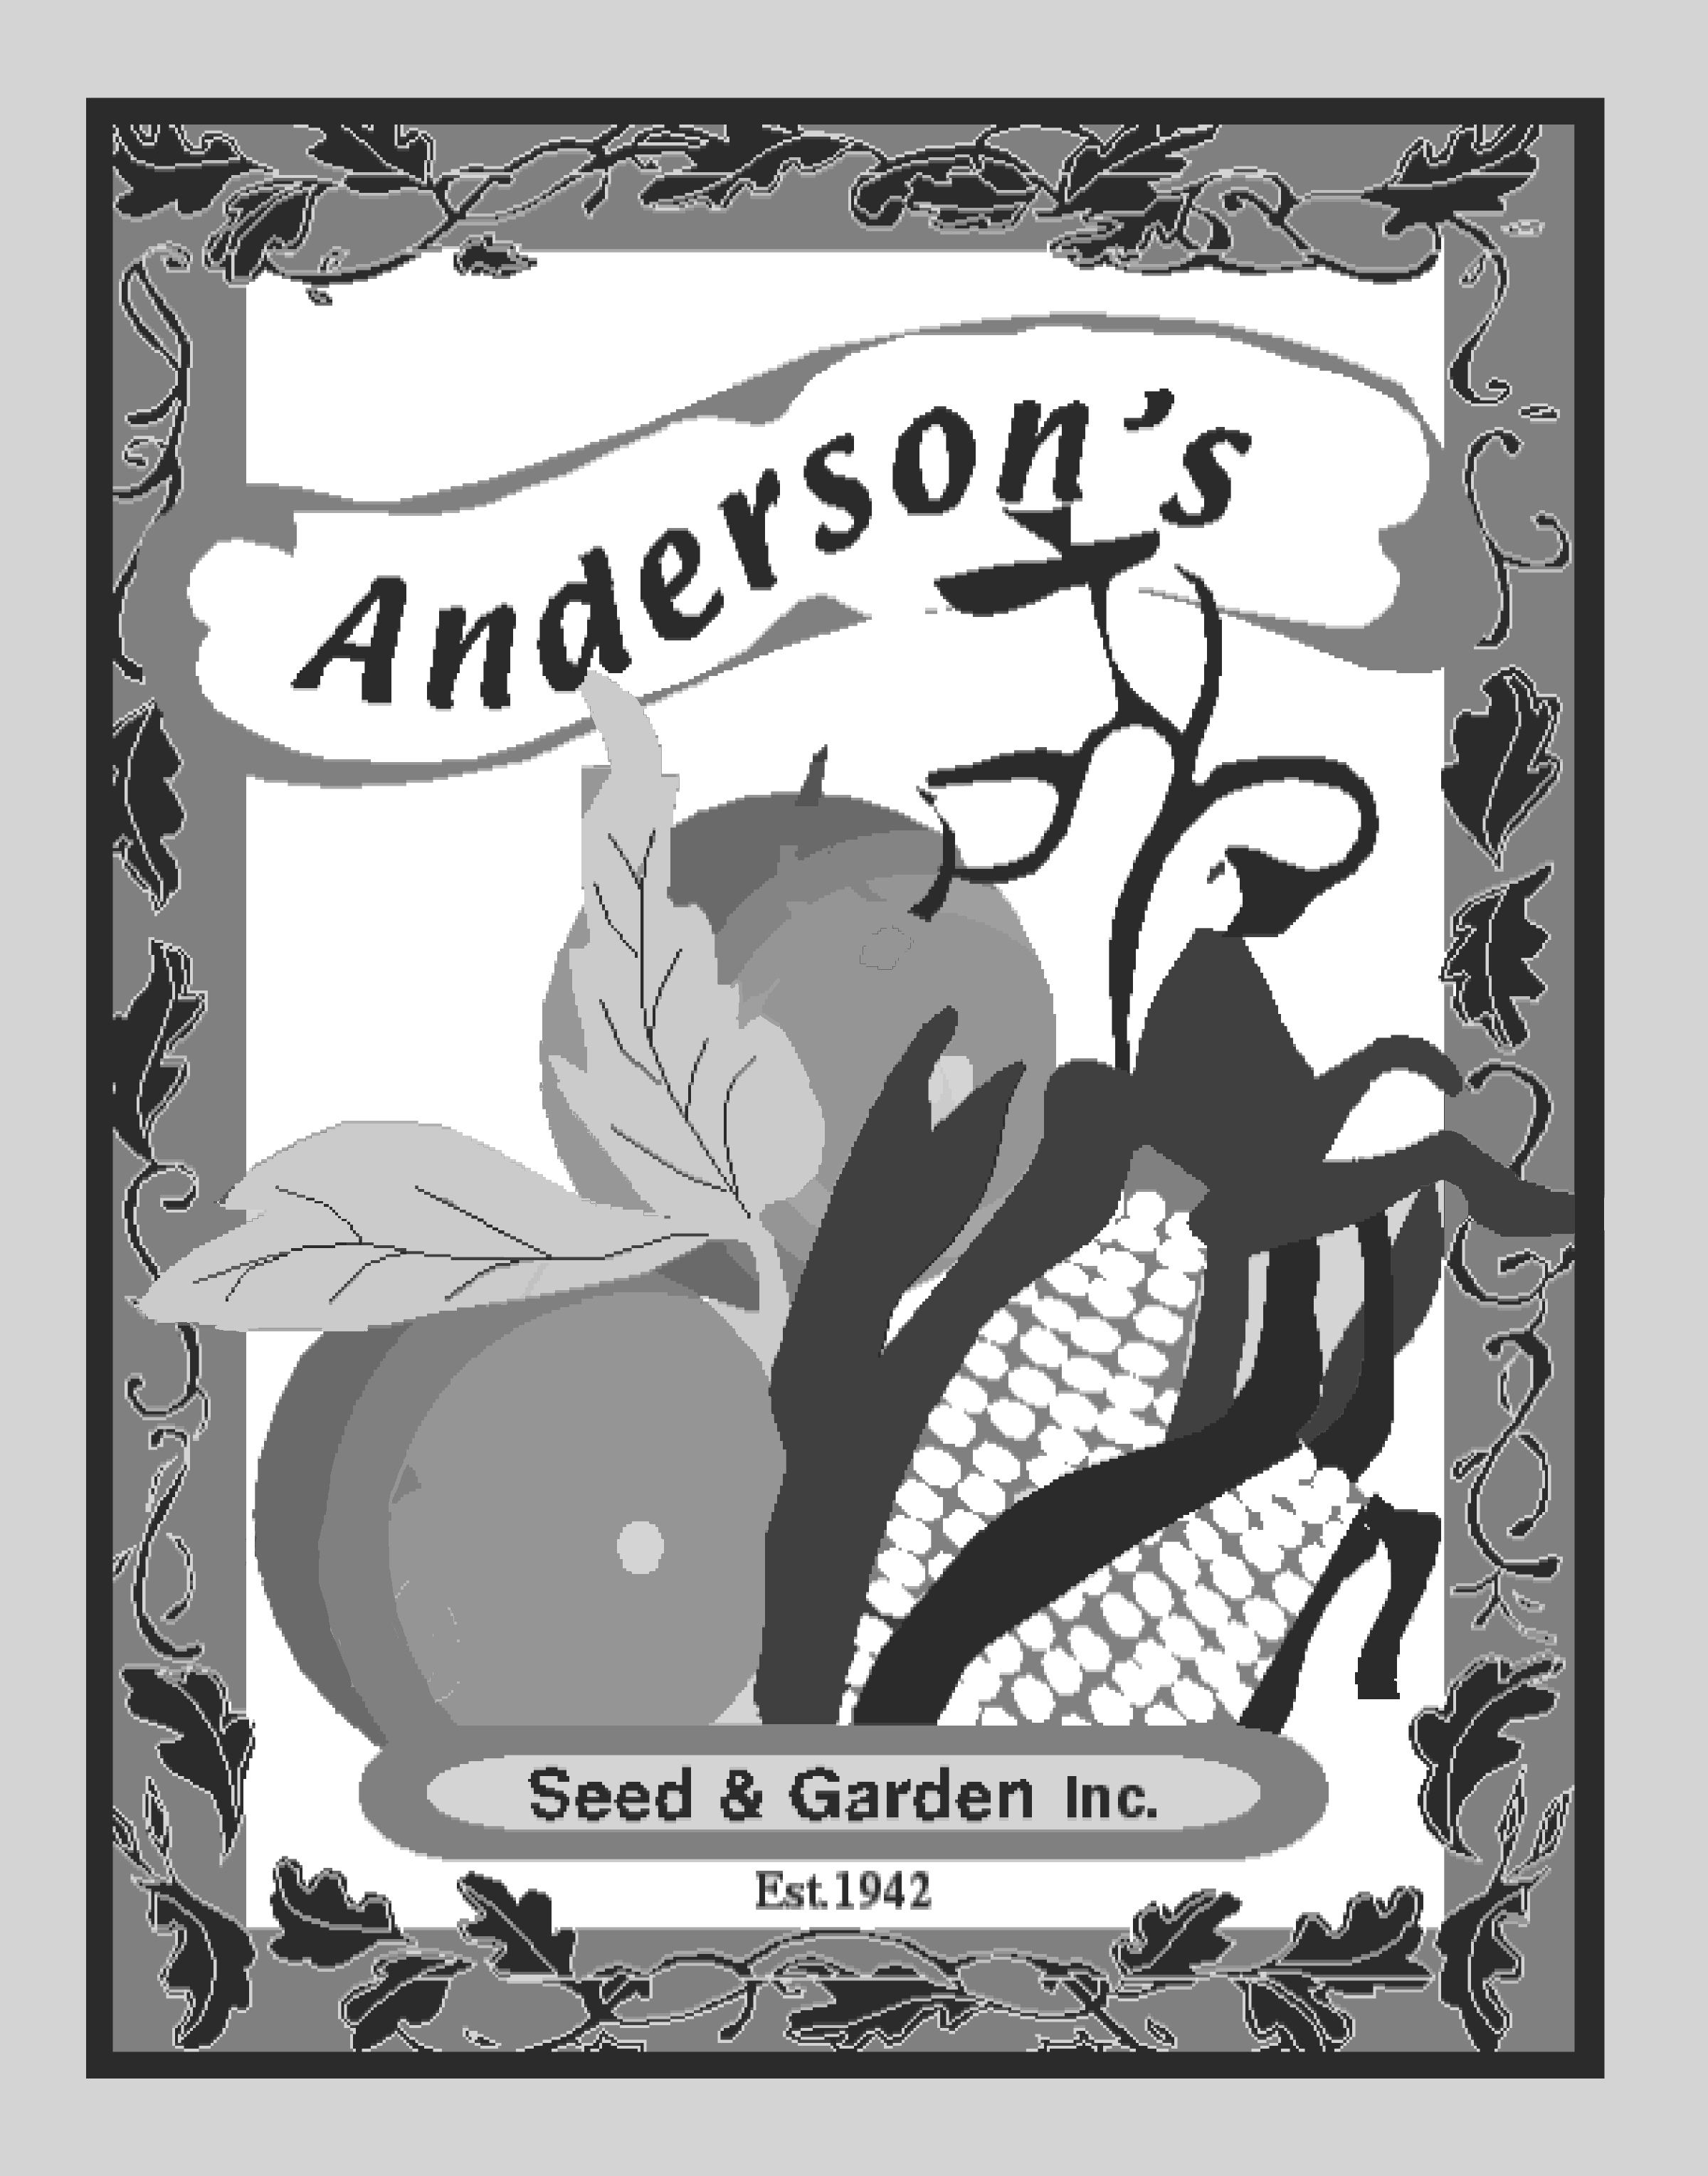 Crimson Sensation Heirloom Watermelon Seed 1 oz.